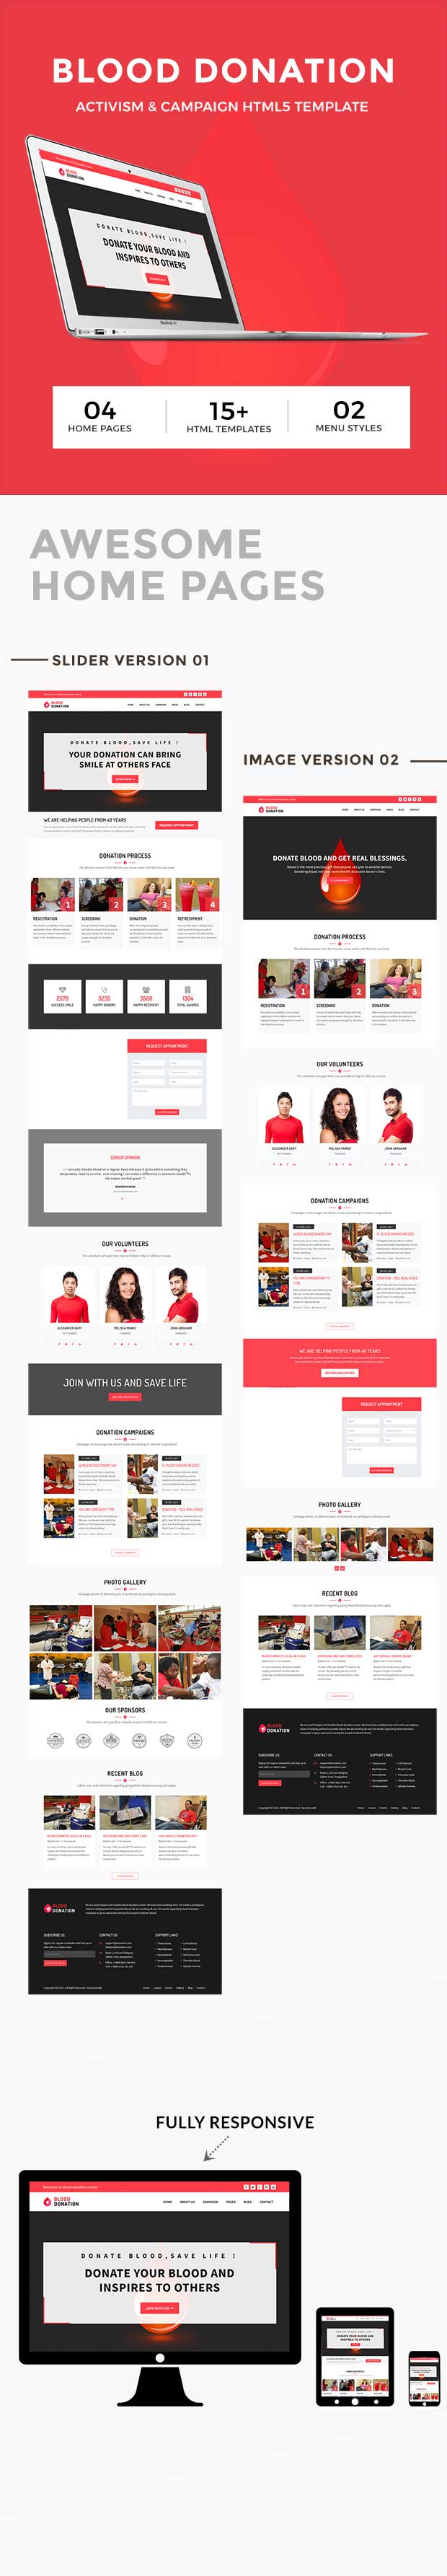 Blood Donation Activism Campaign HTML5 Template